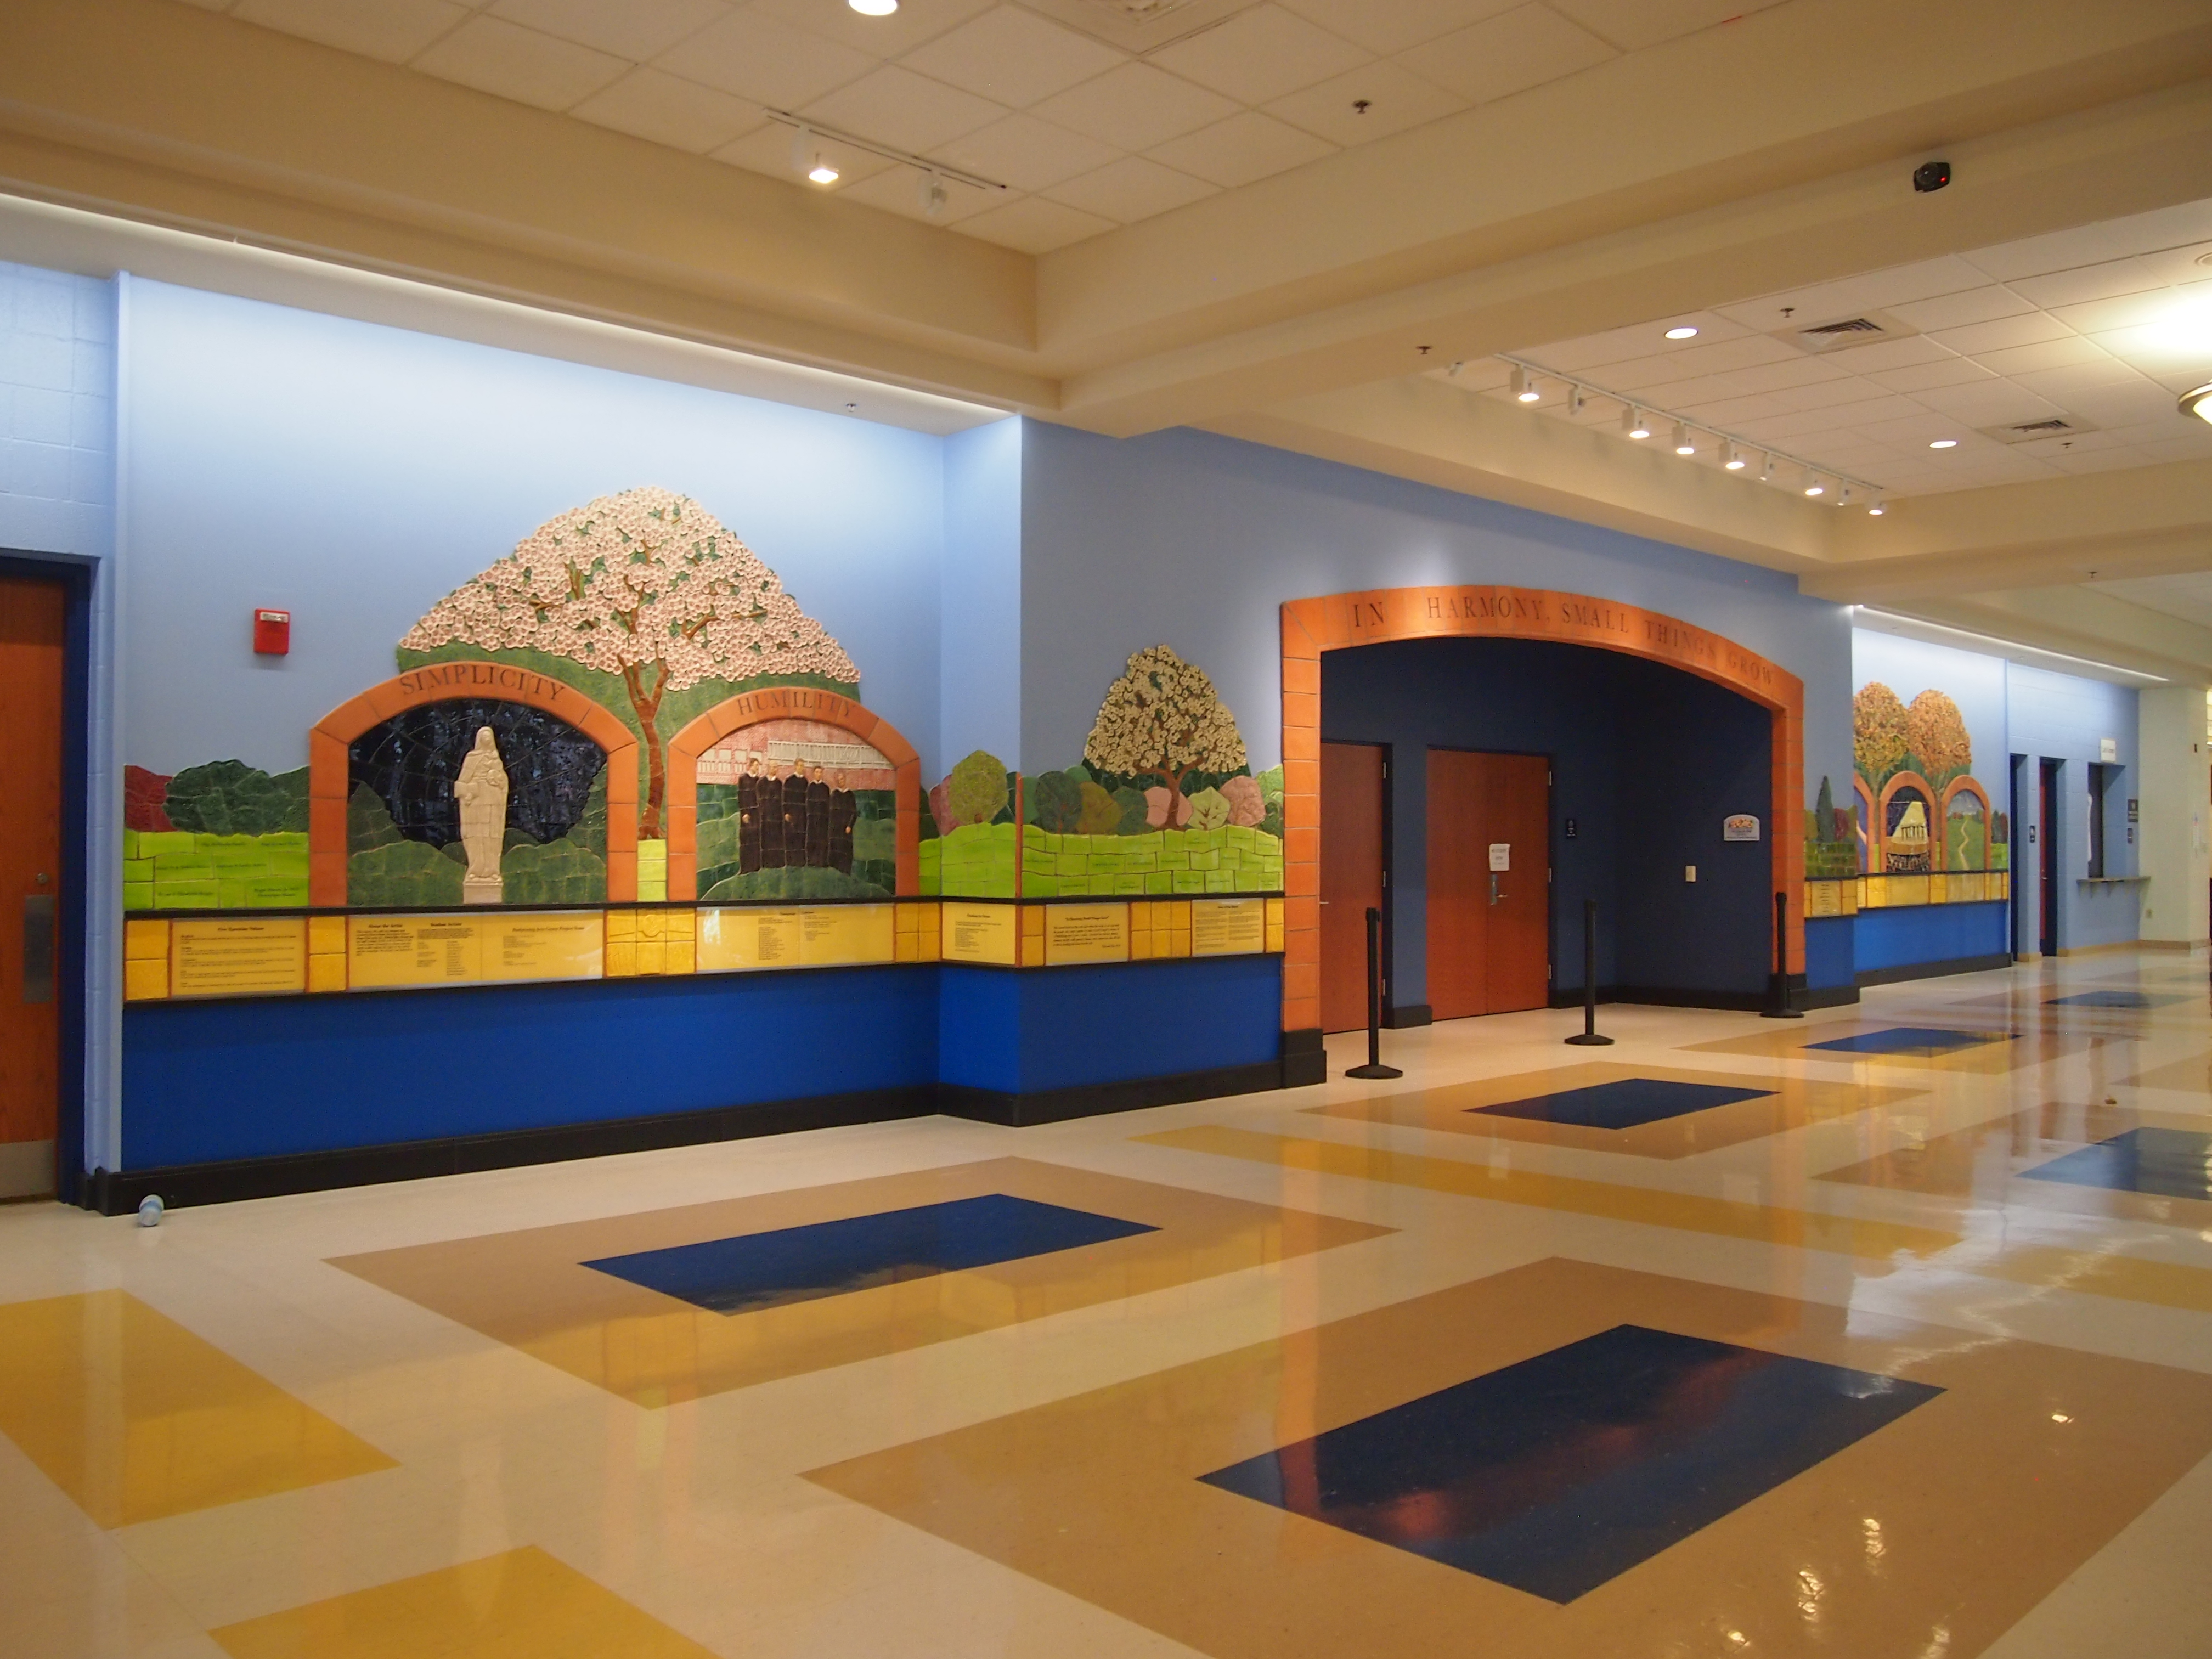 Karen Singer TileworksRecent PostsNews categoriesNews By DateOur Largest Donor Wall Yet  – Our Lady of Good Counsel High School